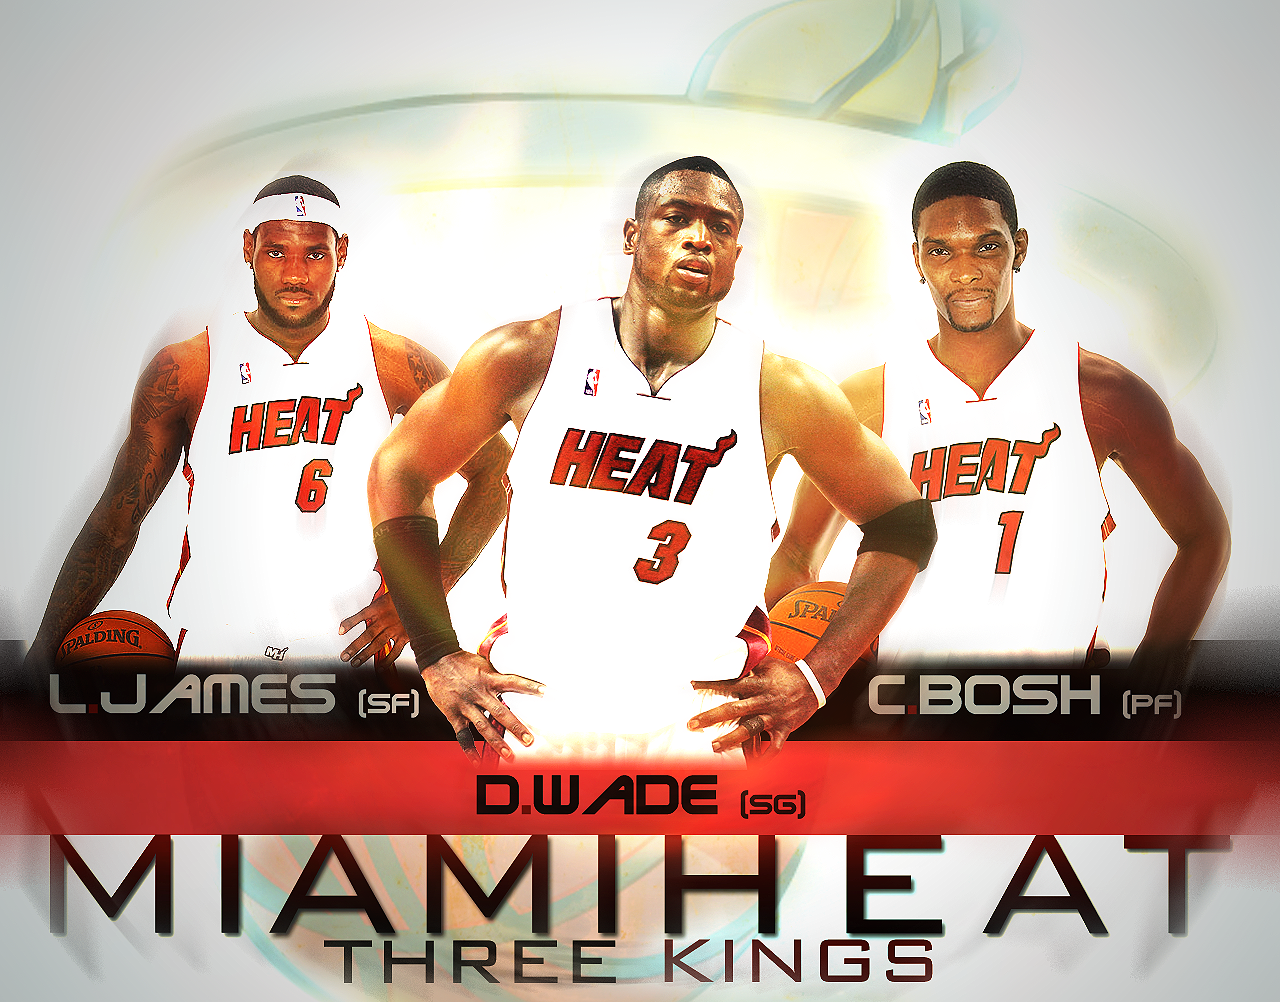 Miami heat updated news - Miami Heat